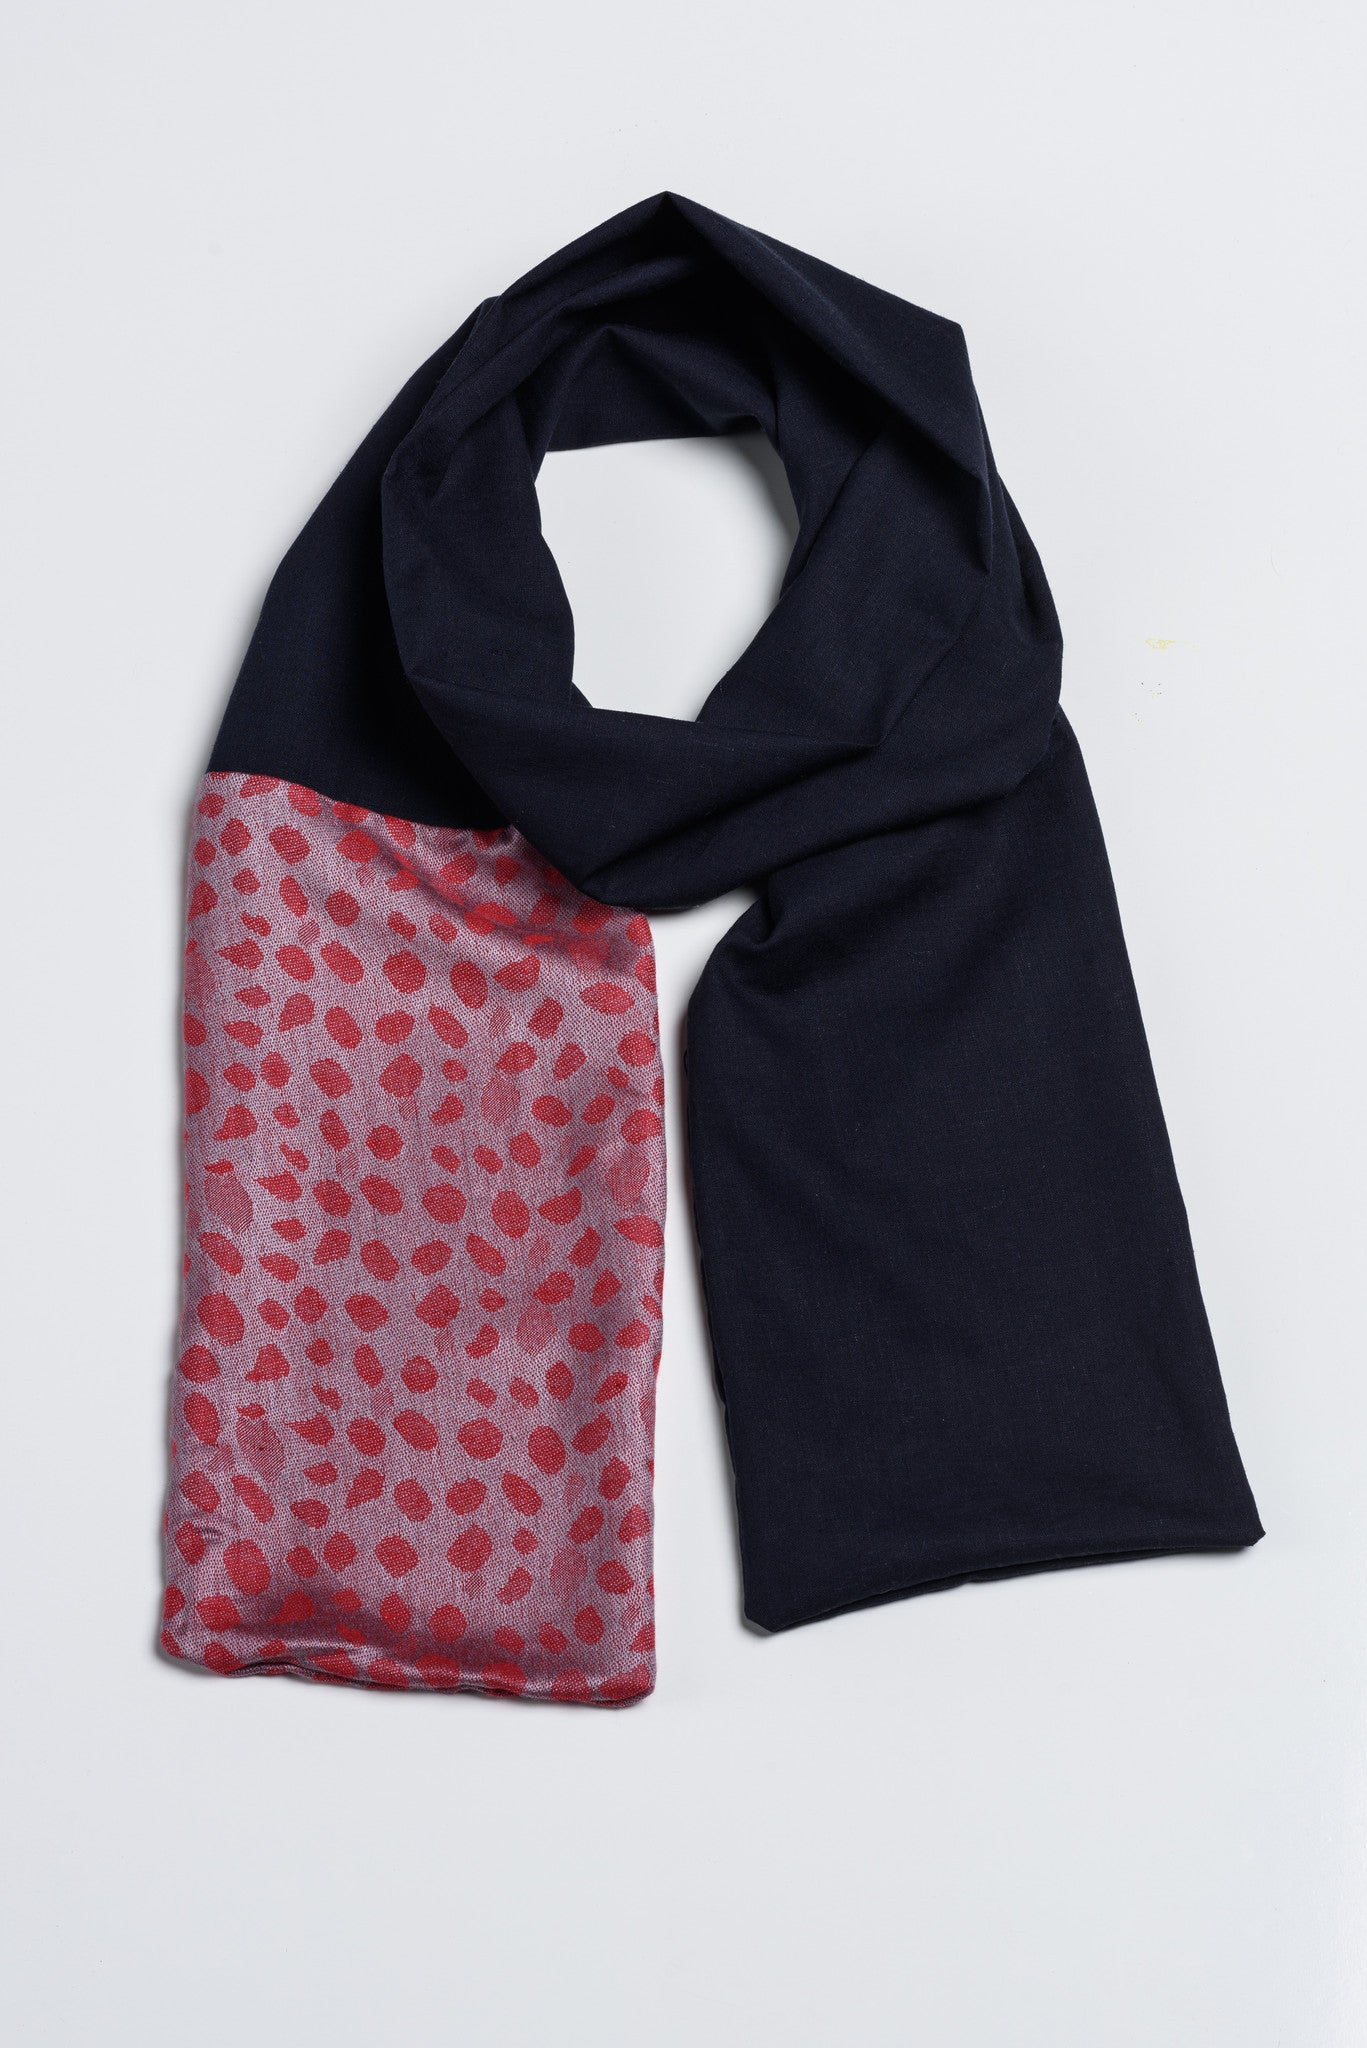 Handmade Navy and Red with Afghan Pashmina - FLYING SCARFS